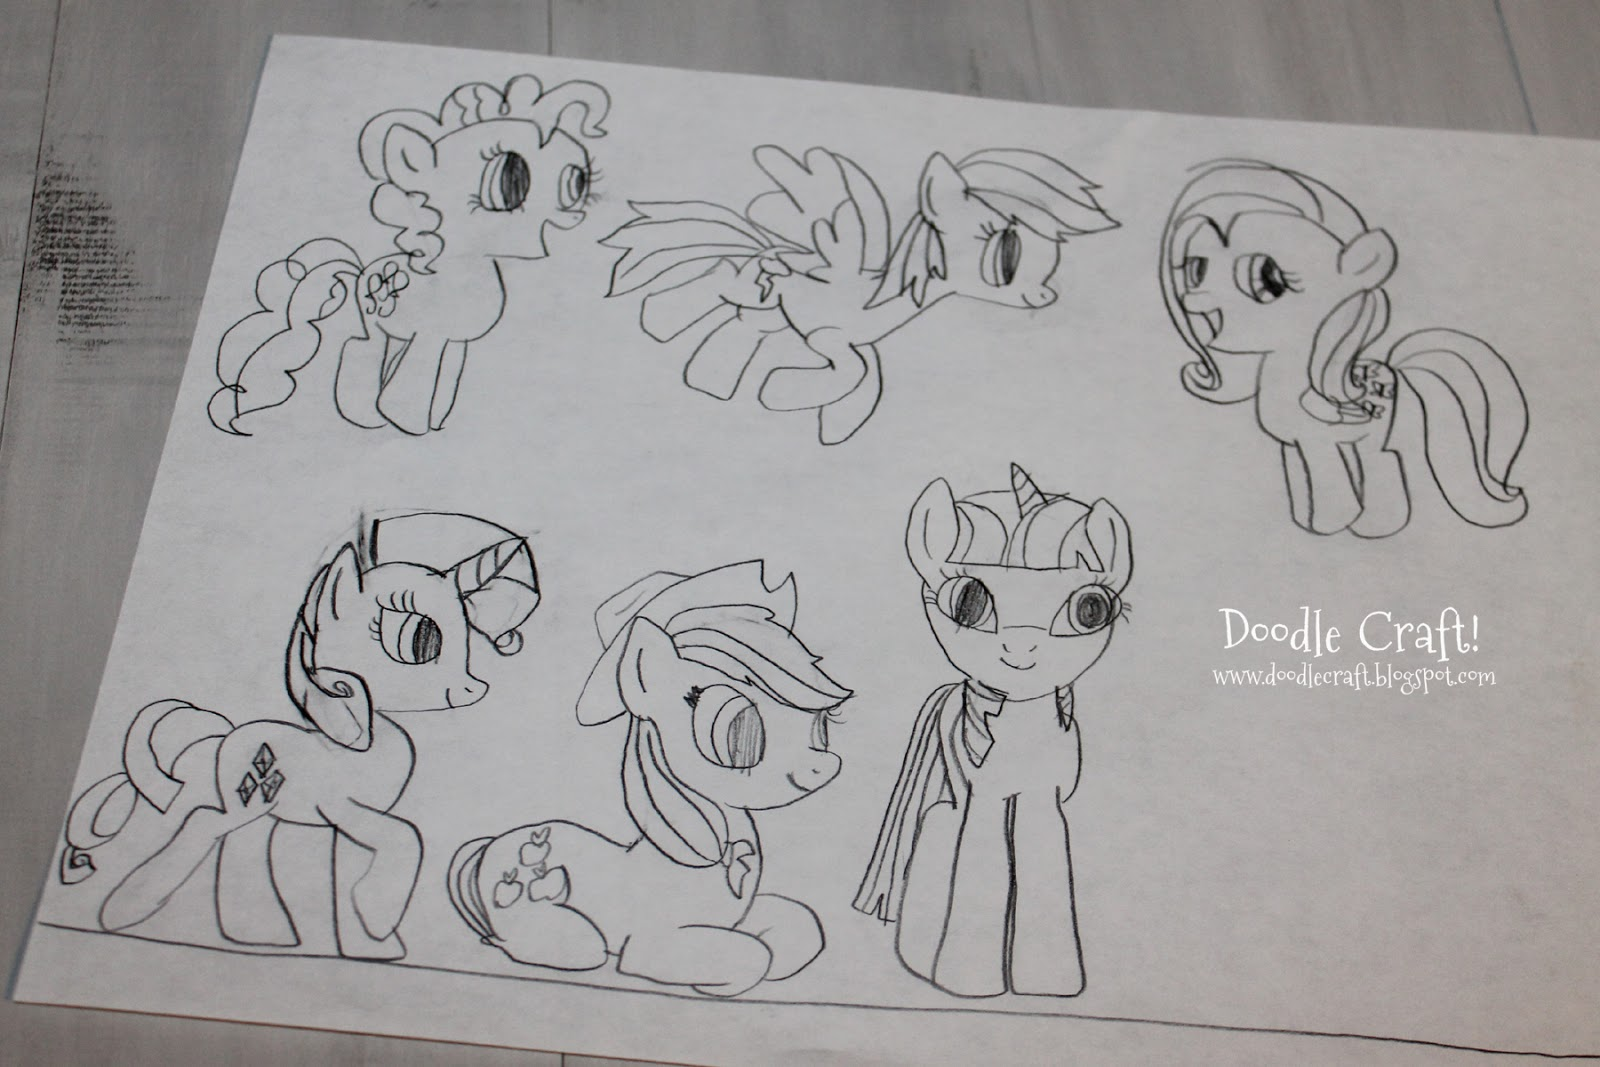 My little pony body drawing doodle craft design and draw your - My Little Pony Body Drawing Doodle Craft Design And Draw Your 5